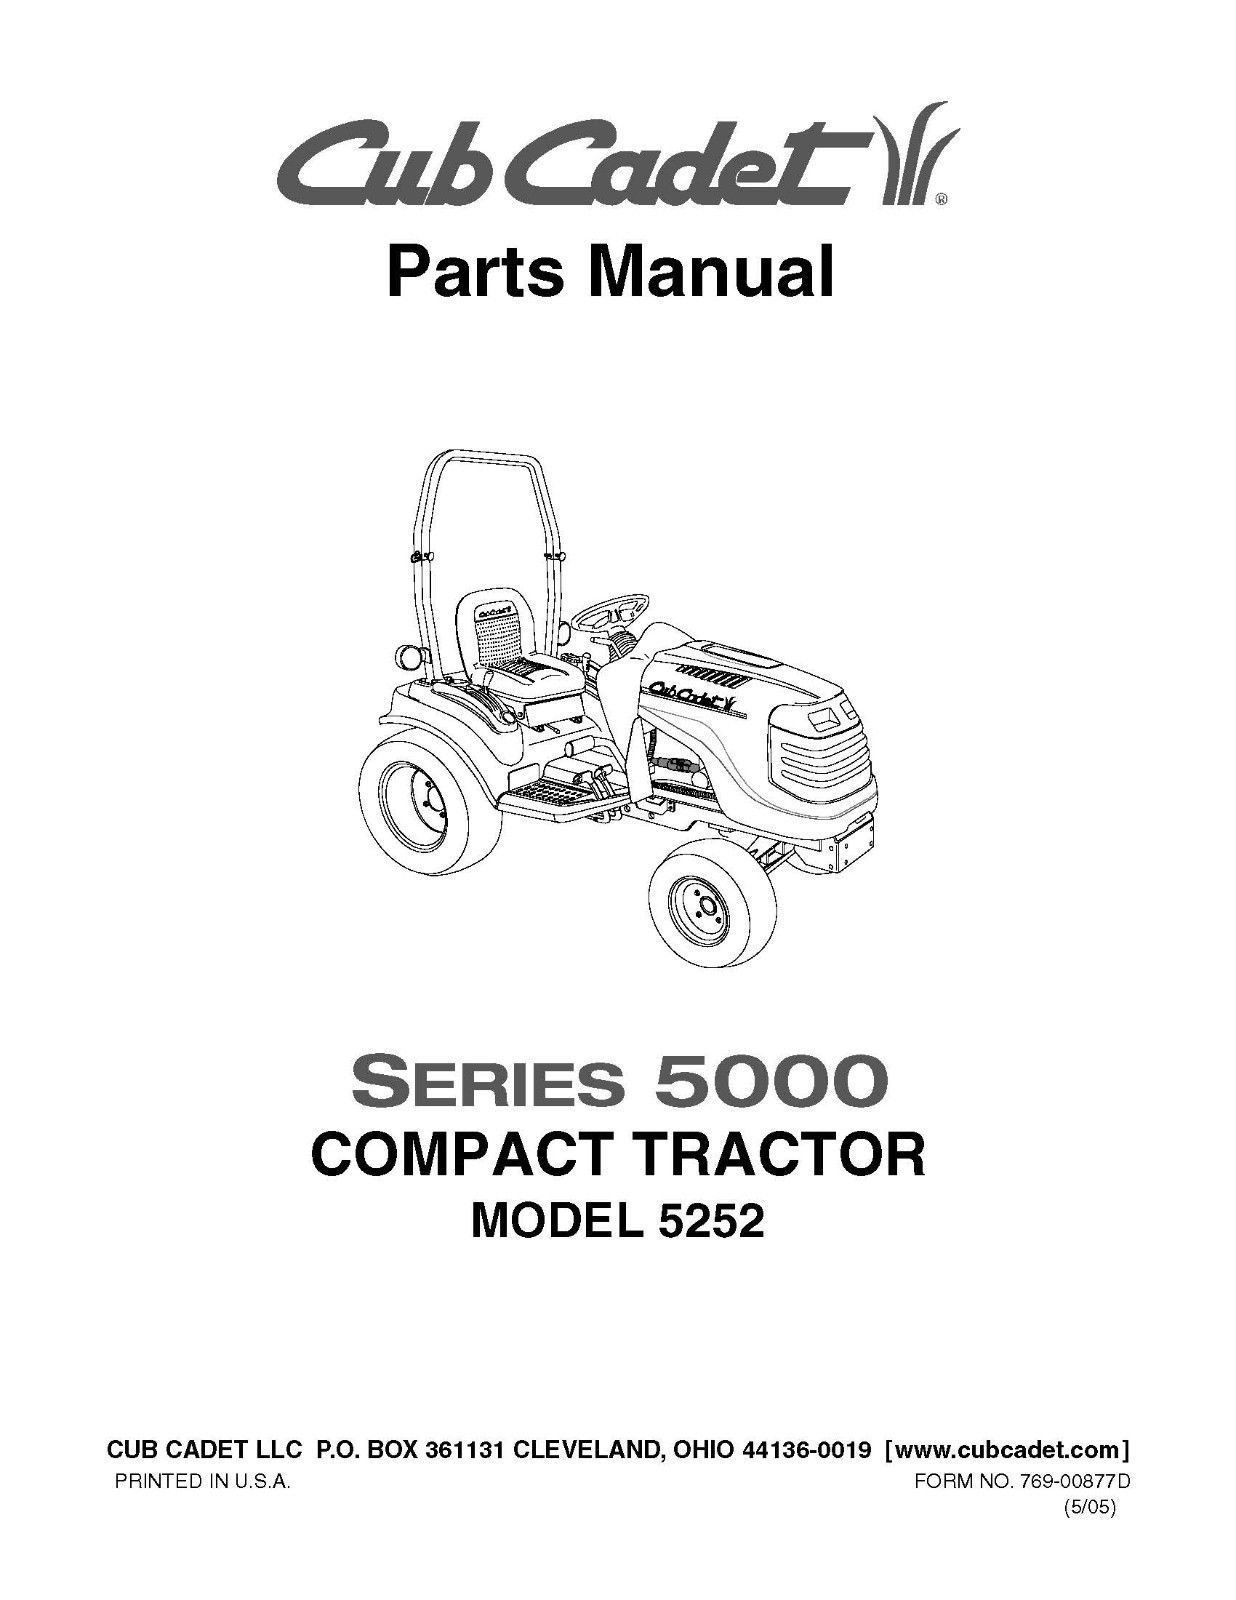 Cub Cadet 5000 Series Compact Lawn Tractor Parts Manual Model No. 5252